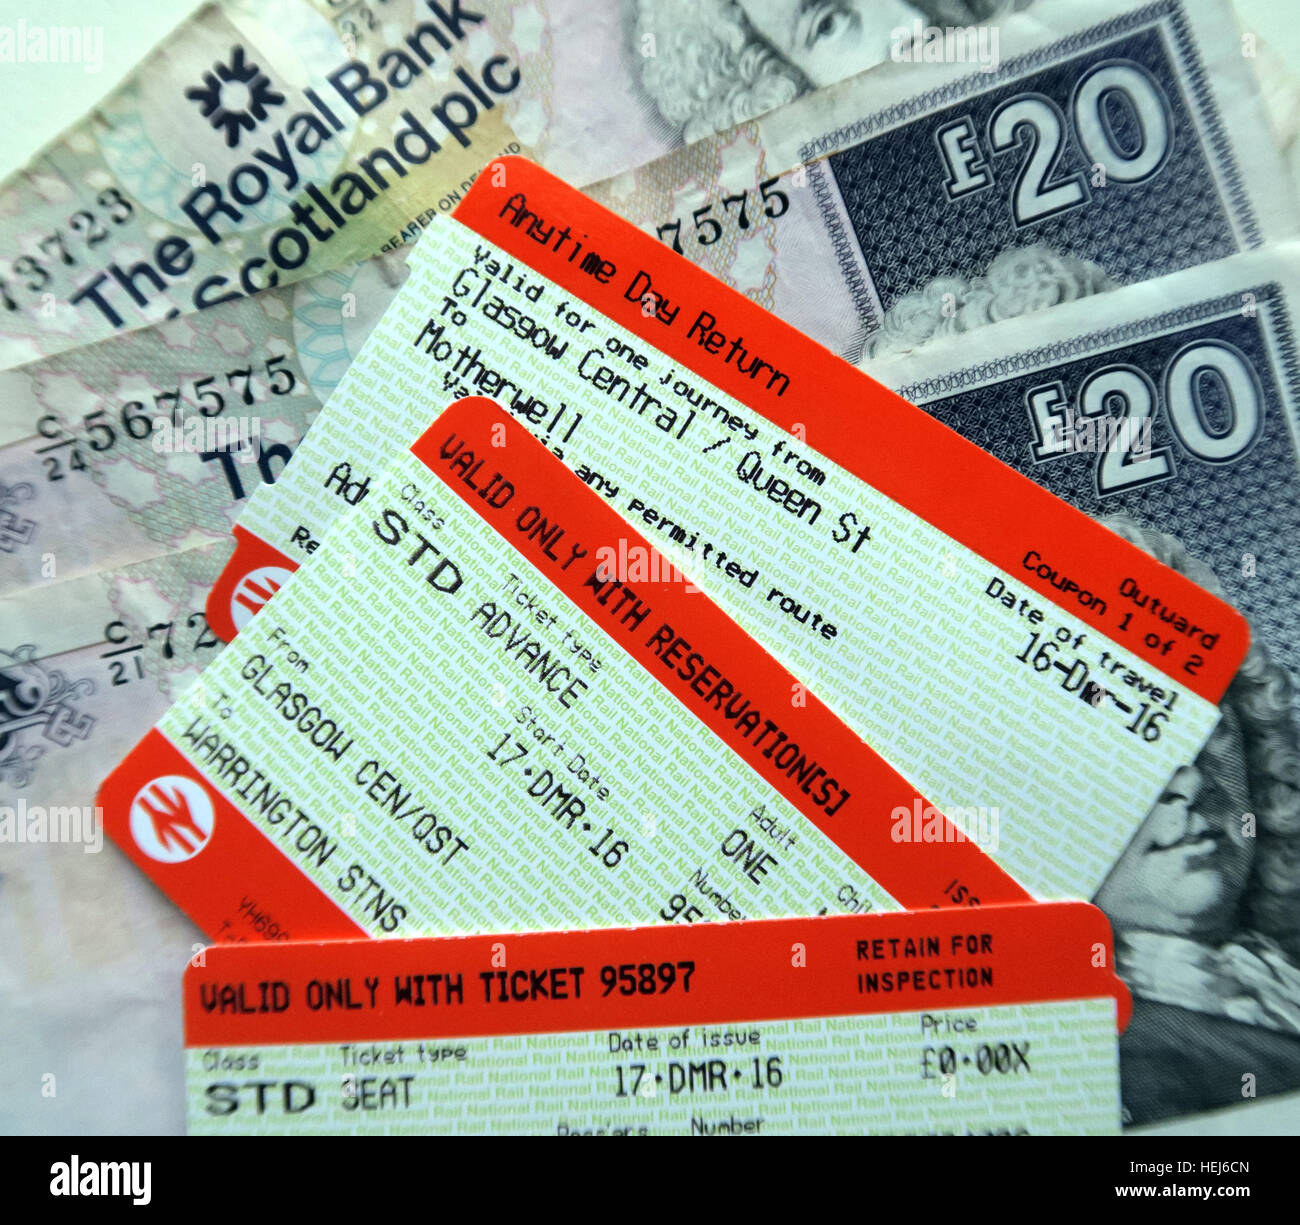 twenty,pound,note,and,money,cash,BR,TOC,STD,Advance,ticket,worth,travelling,poor,Abellio,service,costly,expensive,day,return,Glasgow,Motherwell,Warrington,stations,STNS,anytime,Royal,Bank,of,Scotland,Advance Ticket,train tickets,Scotrail train tickets,day return,Royal Bank Of Scotland,GoTonySmith,@HotpixUK,Tony,Smith,UK,GB,Great,Britain,United,Kingdom,Scots,Scottish,British,Scotland,Glasgow,Greater,problem,with,problem with,issue with,City,Centre,cities,Urban,Urbanist,town,infrastructure,transport,tour,tourism,tourists,urban,attraction,attractions,Buy Pictures of,Buy Images Of,Images of,Stock Images,Tony Smith,United Kingdom,Great Britain,Greater Glasgow,British Isles,Glasgow City Centre,City Centre